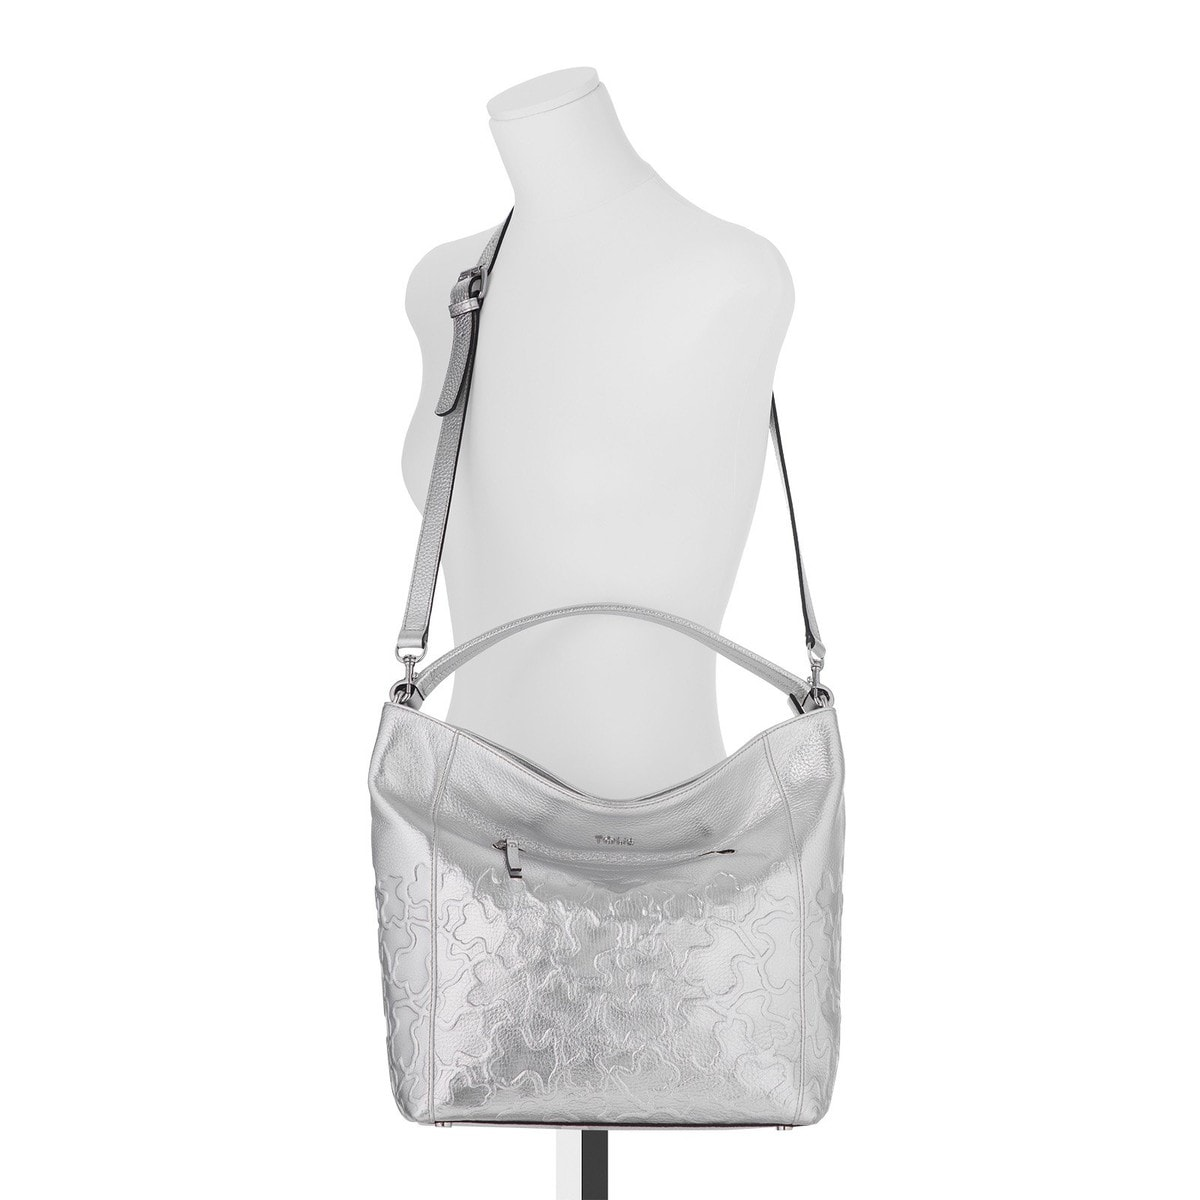 Silver colored Leather Kaos Block One shoulder bag